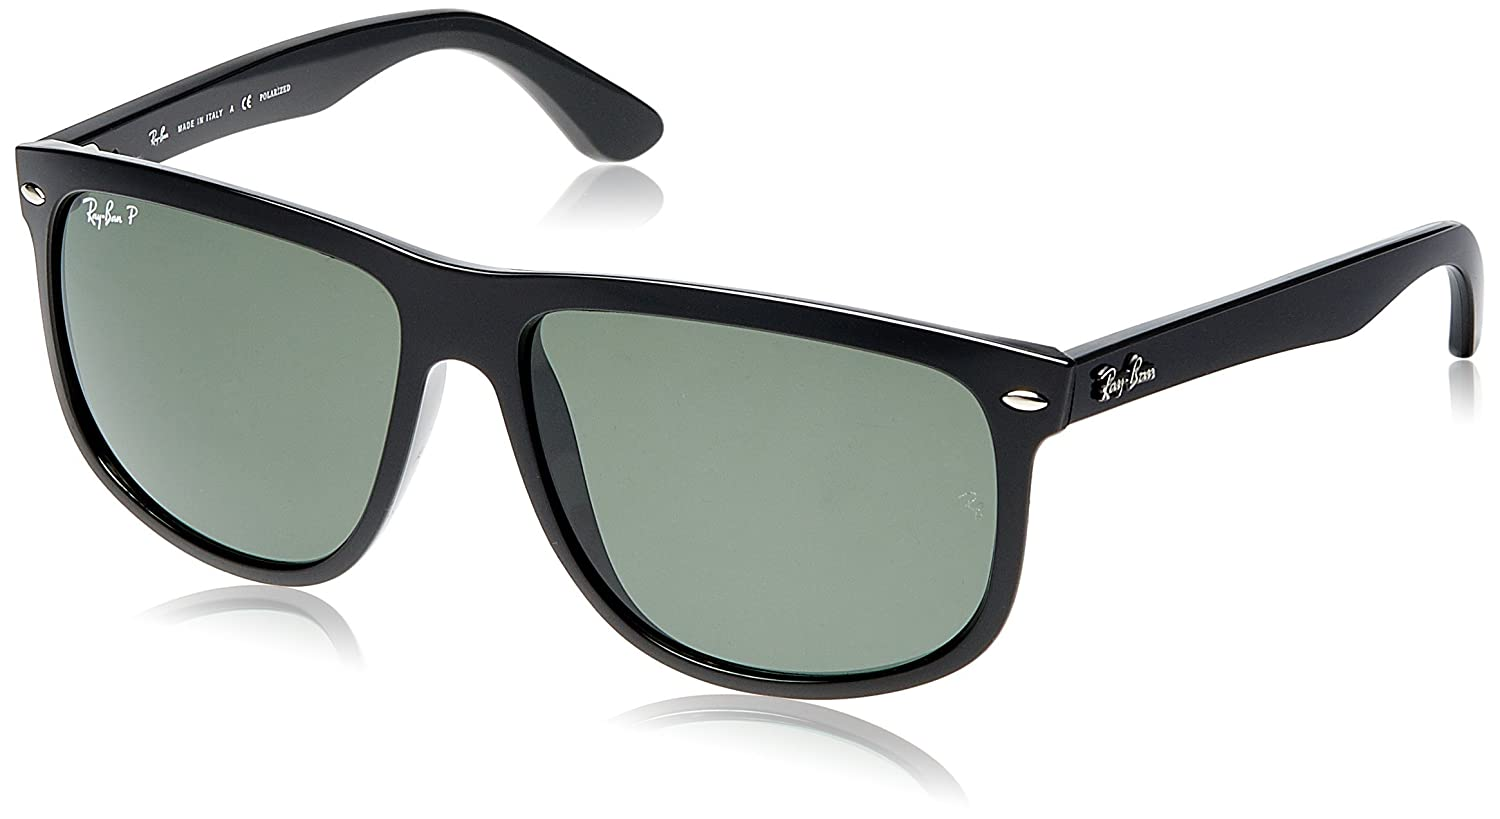 f2ad3d7f806fd5 Ray-Ban Aviator Black Frame Polarized Women's Lens Sunglasses (RB4147-601/58/Green):  Ray-Ban: Amazon.in: Clothing & Accessories